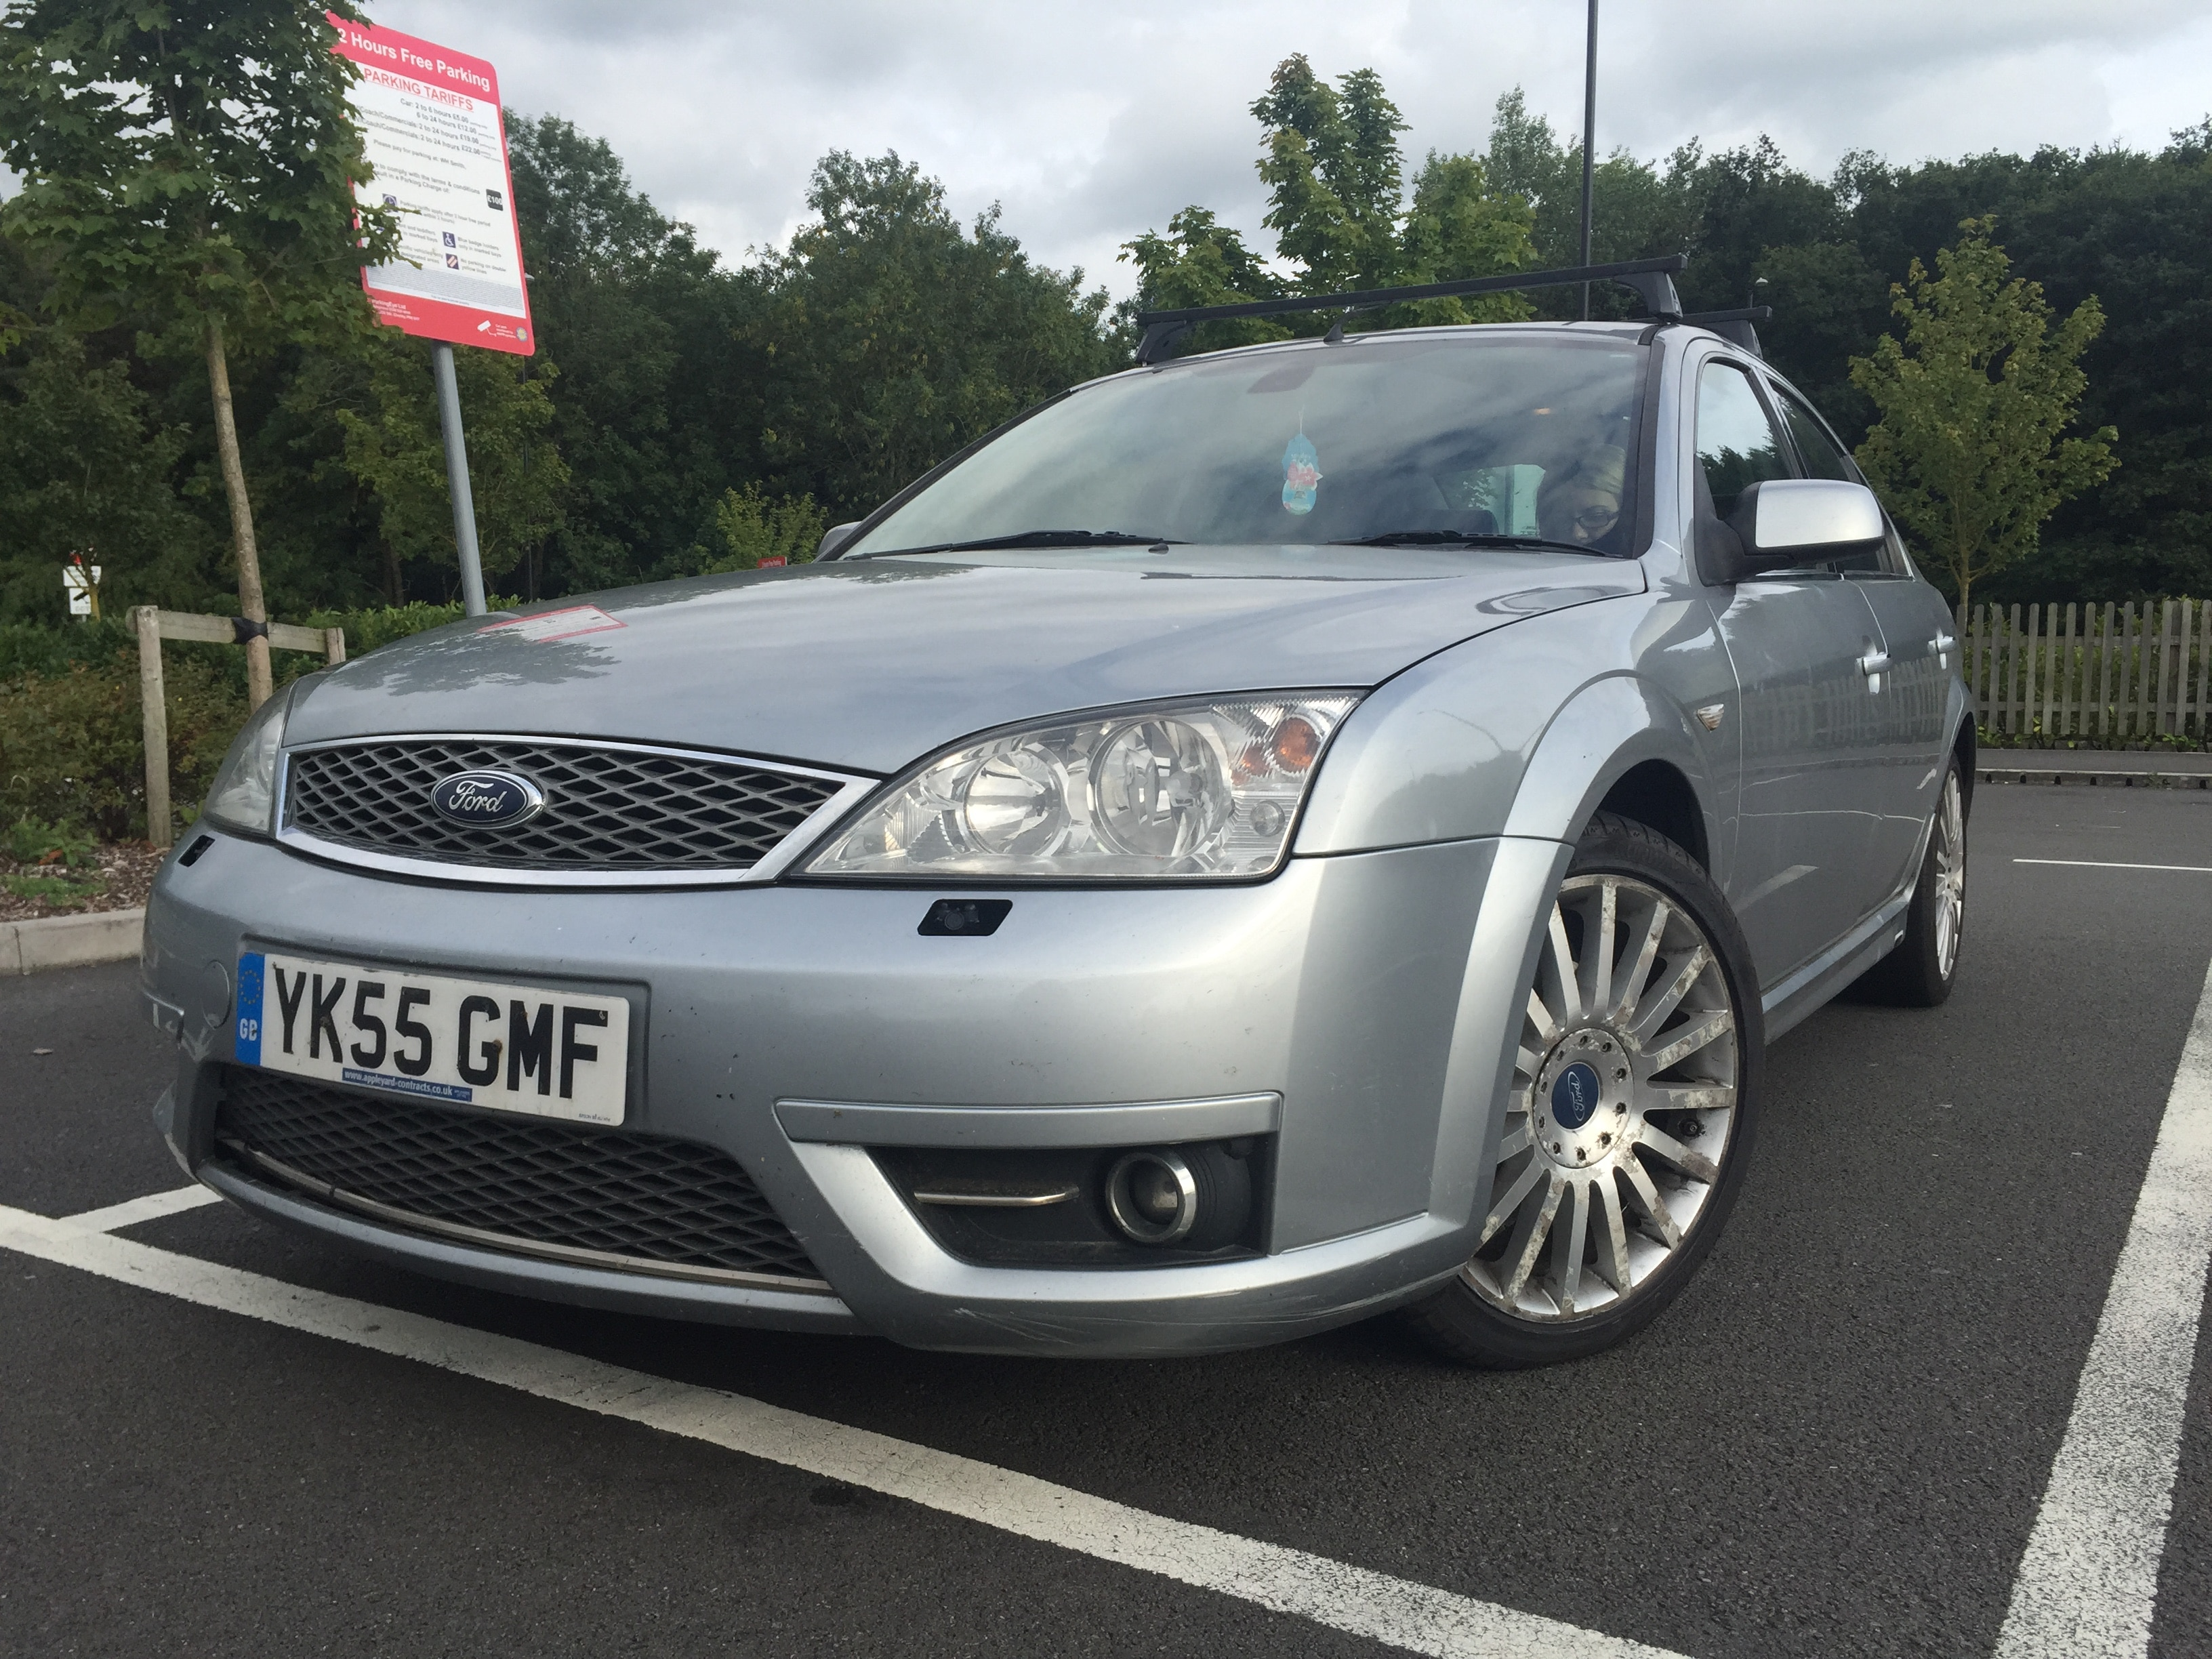 Mondeo STTDCi, Ford Mondeo STTDCi, Ford Mondeo, Ford Mondeo ST, Mondeo STTDCi, Mondeo ST, Mondeo, Ford, hot hatch, diesel, modified, Wolfrace, Airtec, Bluefin, modified car, magazine project car, Performance Ford magazine, Performance Ford, Fast Ford, motoring, automotive, classic car, retro car, ebay, ebay motors, autotrader